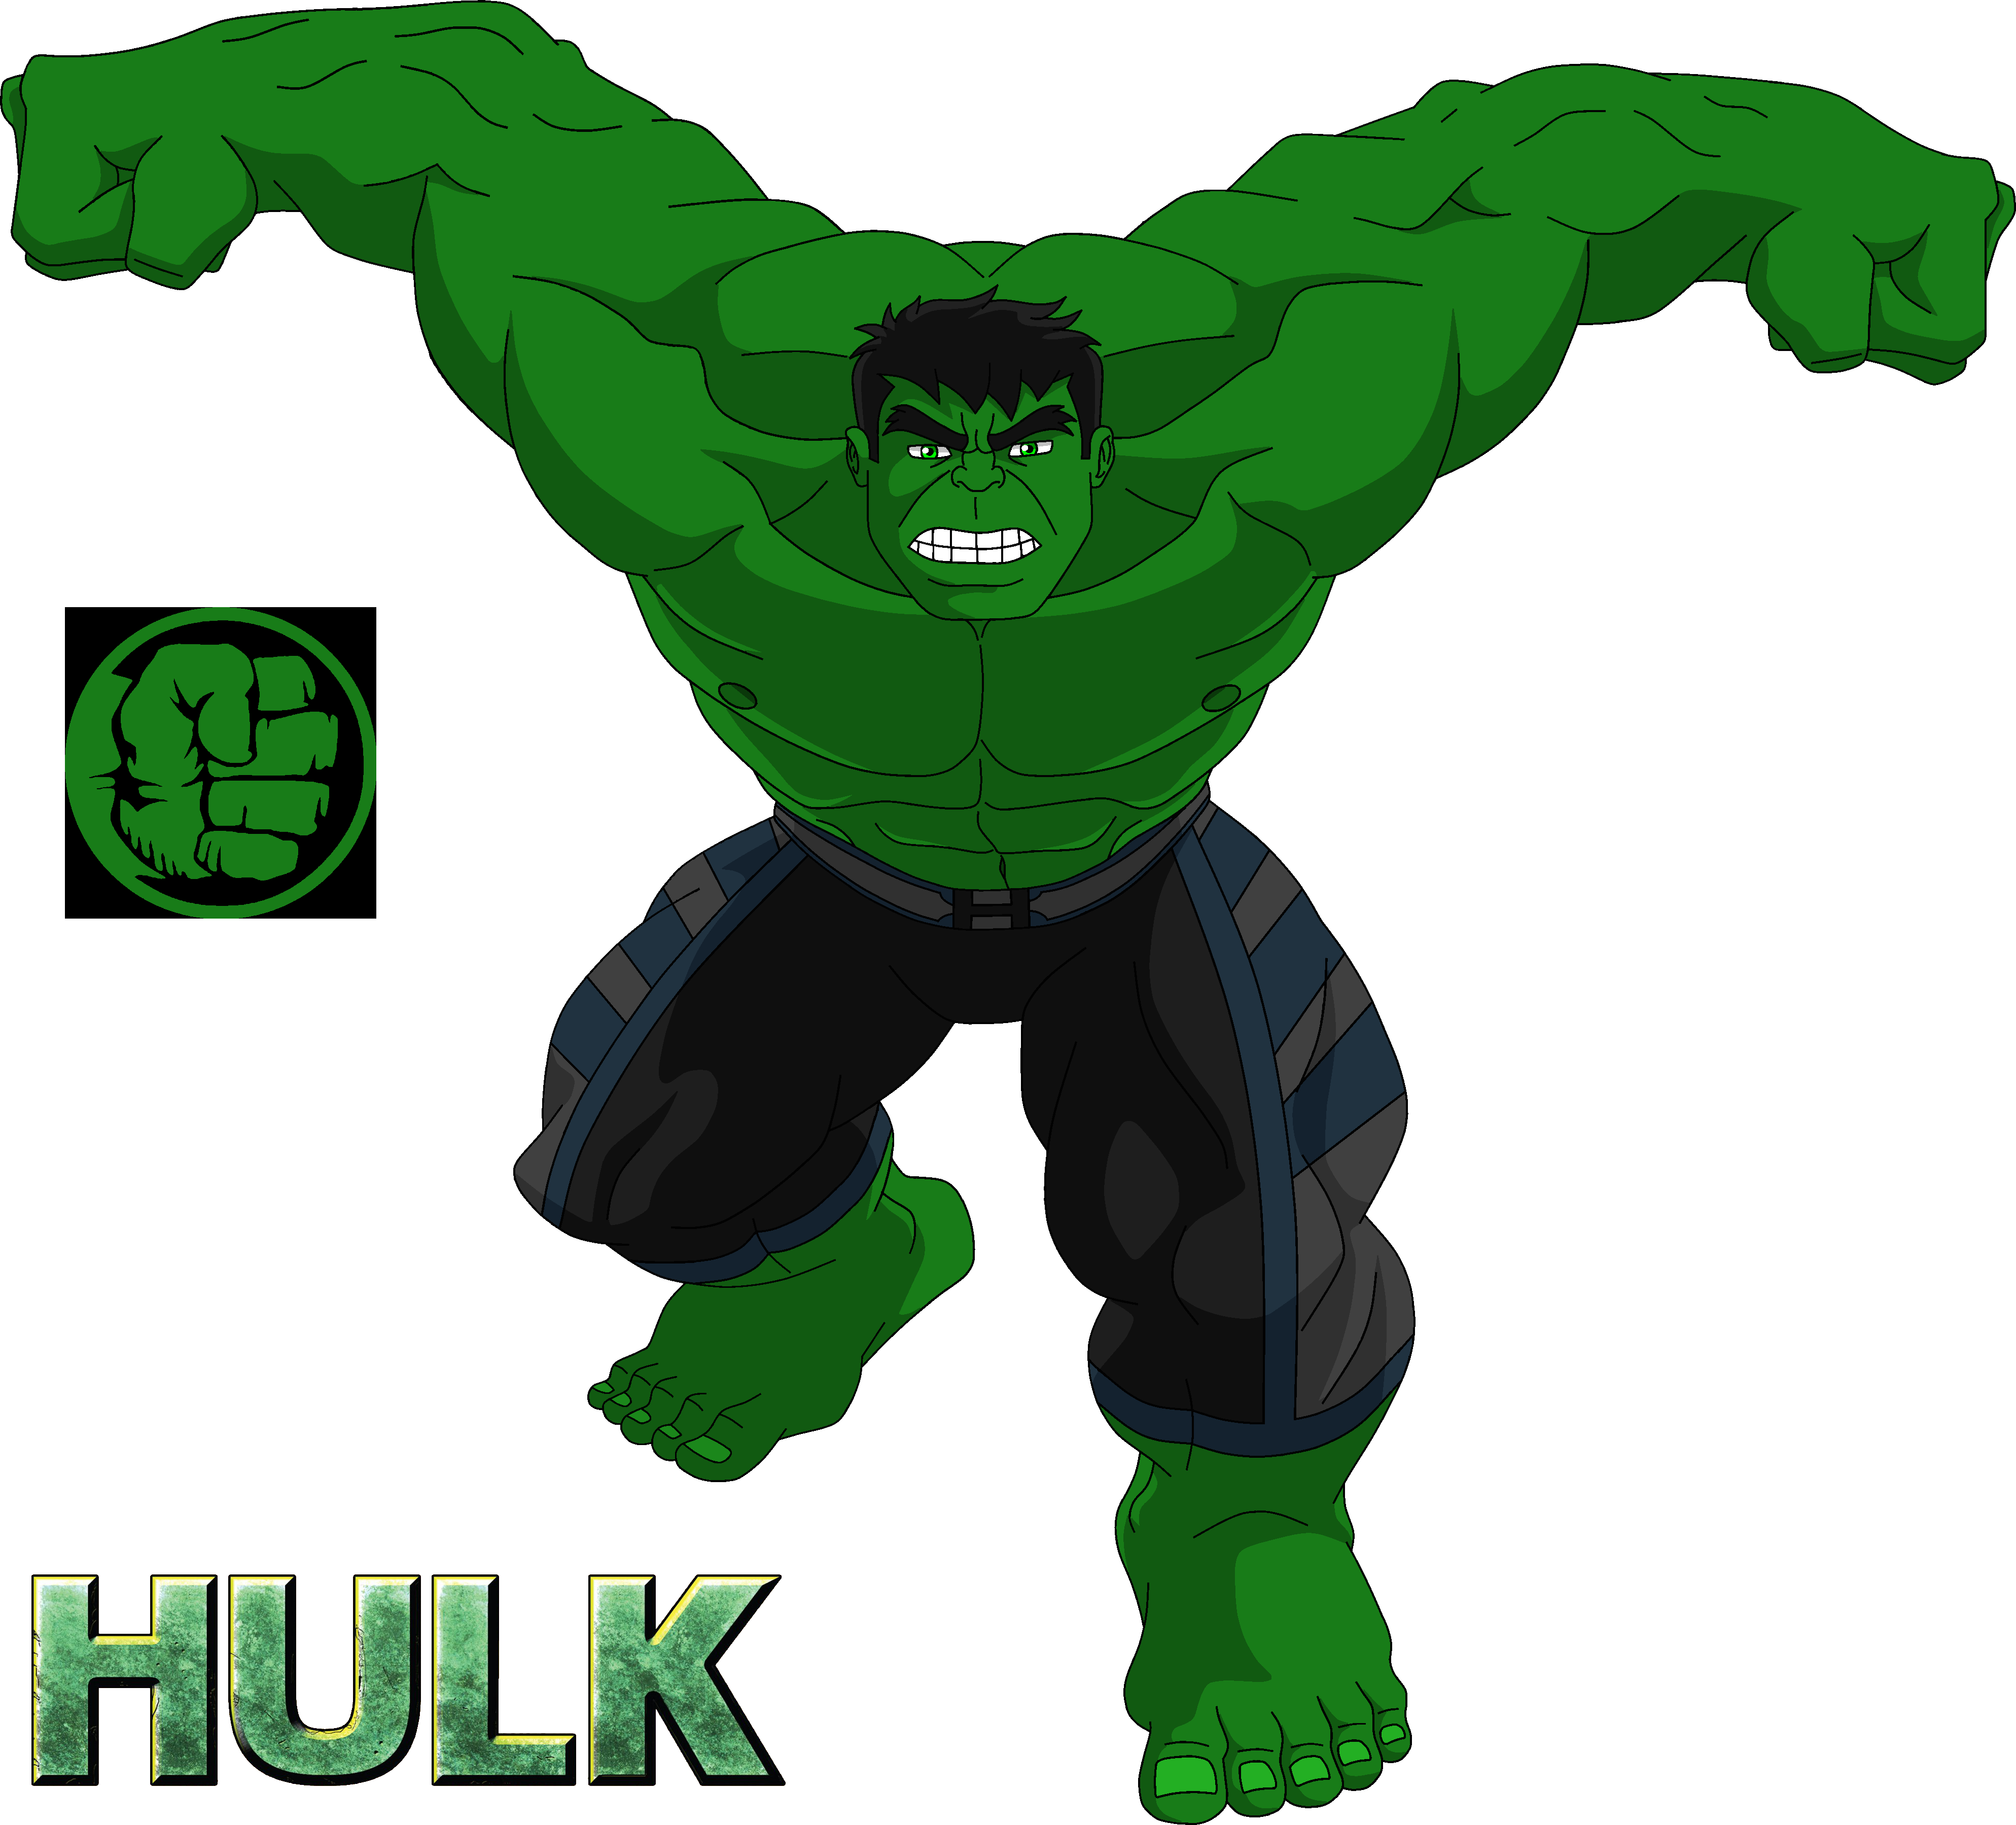 The Incredible HULK by steeven7620 on DeviantArt